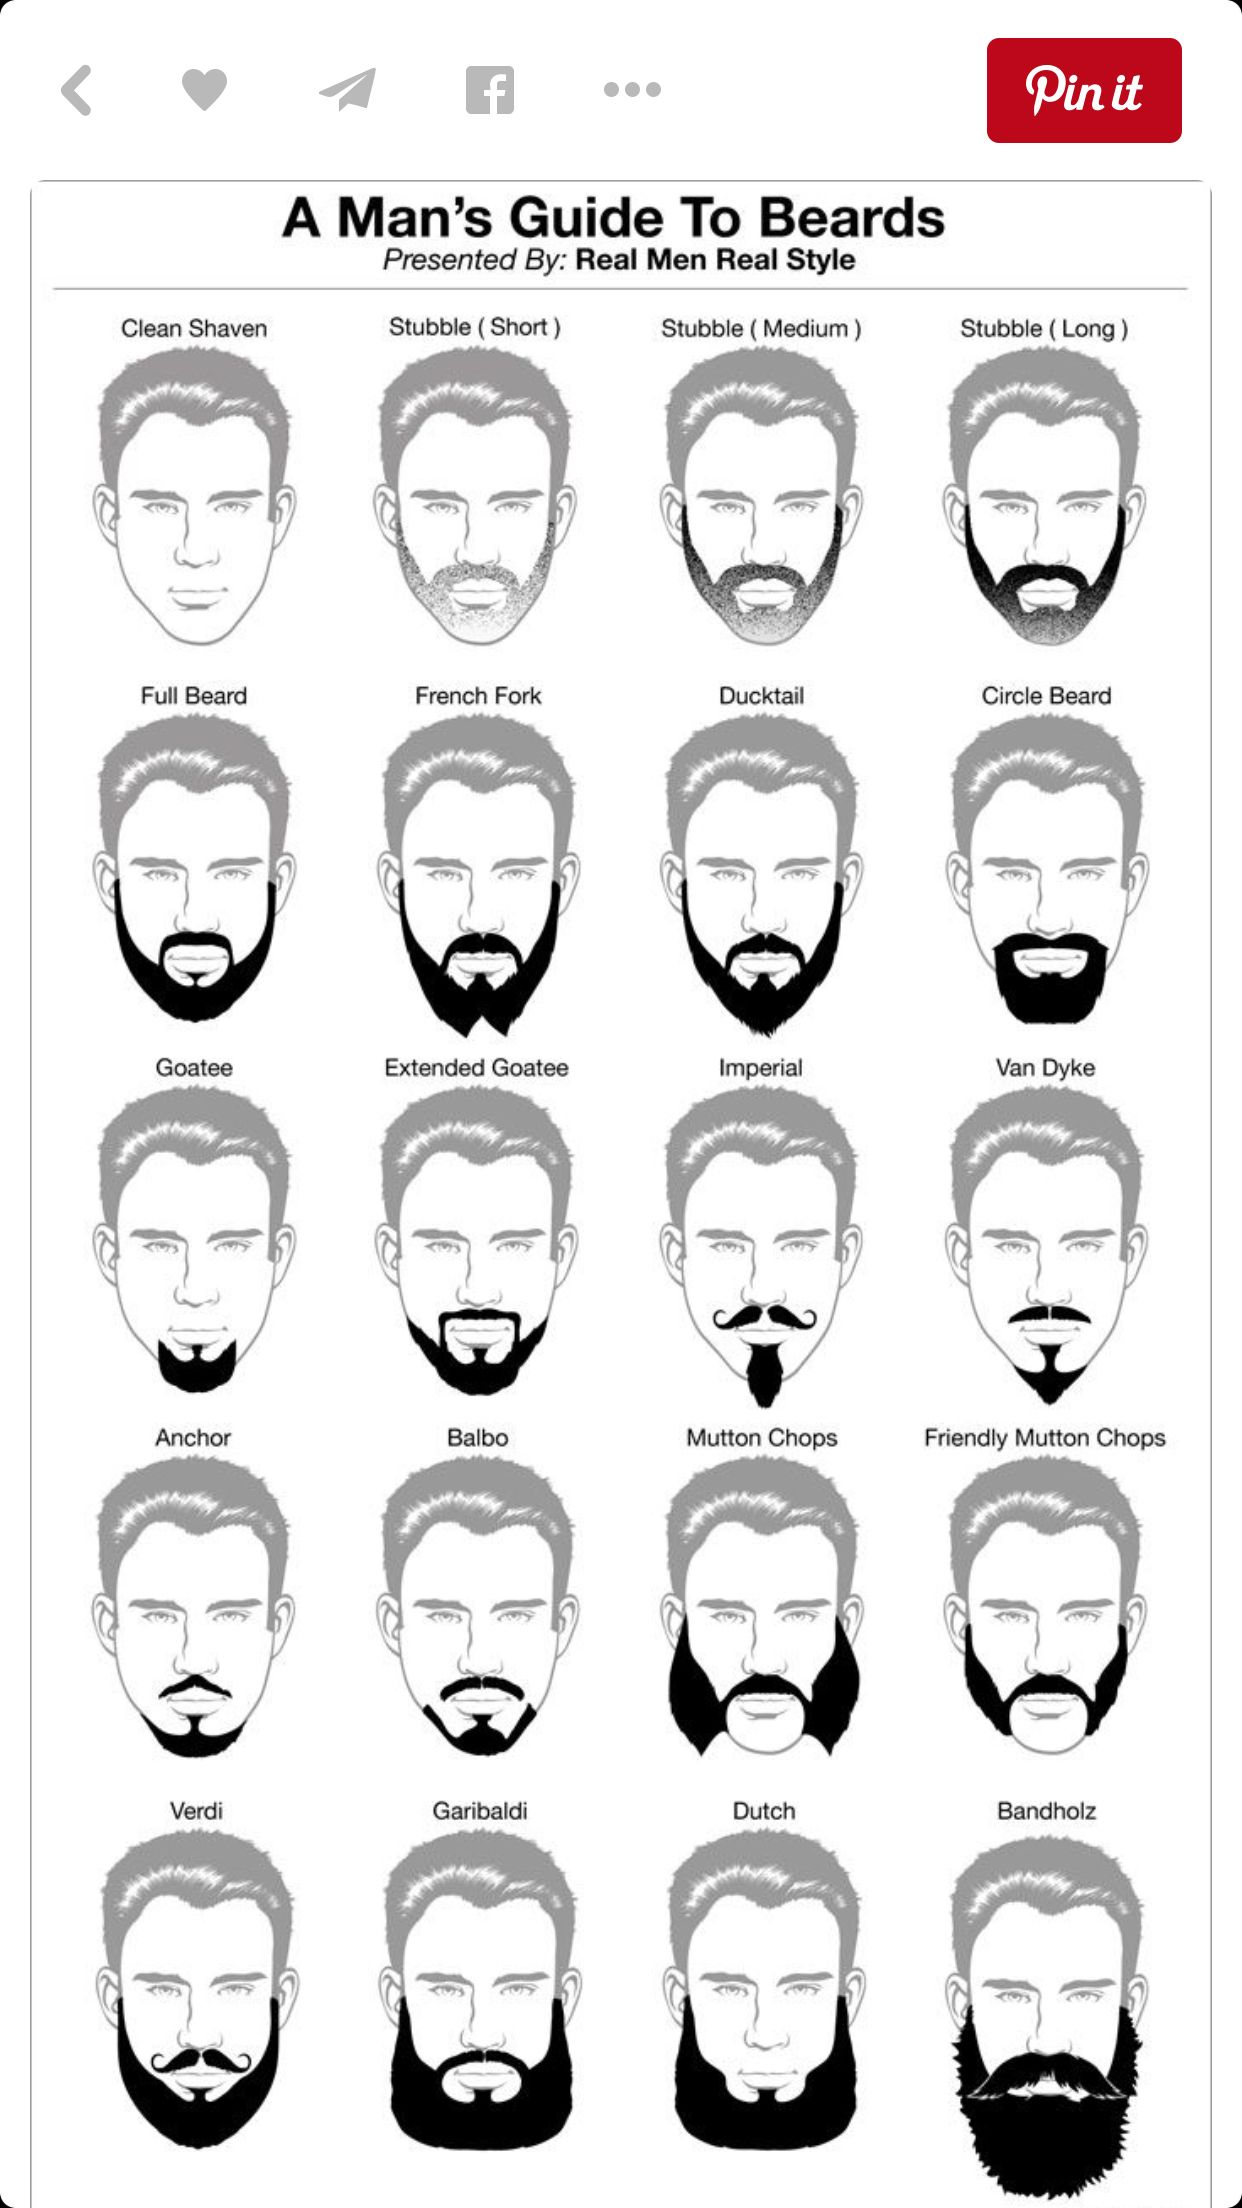 Mens haircut chart barber  barber ideas or inspiration  pinterest  beard styles